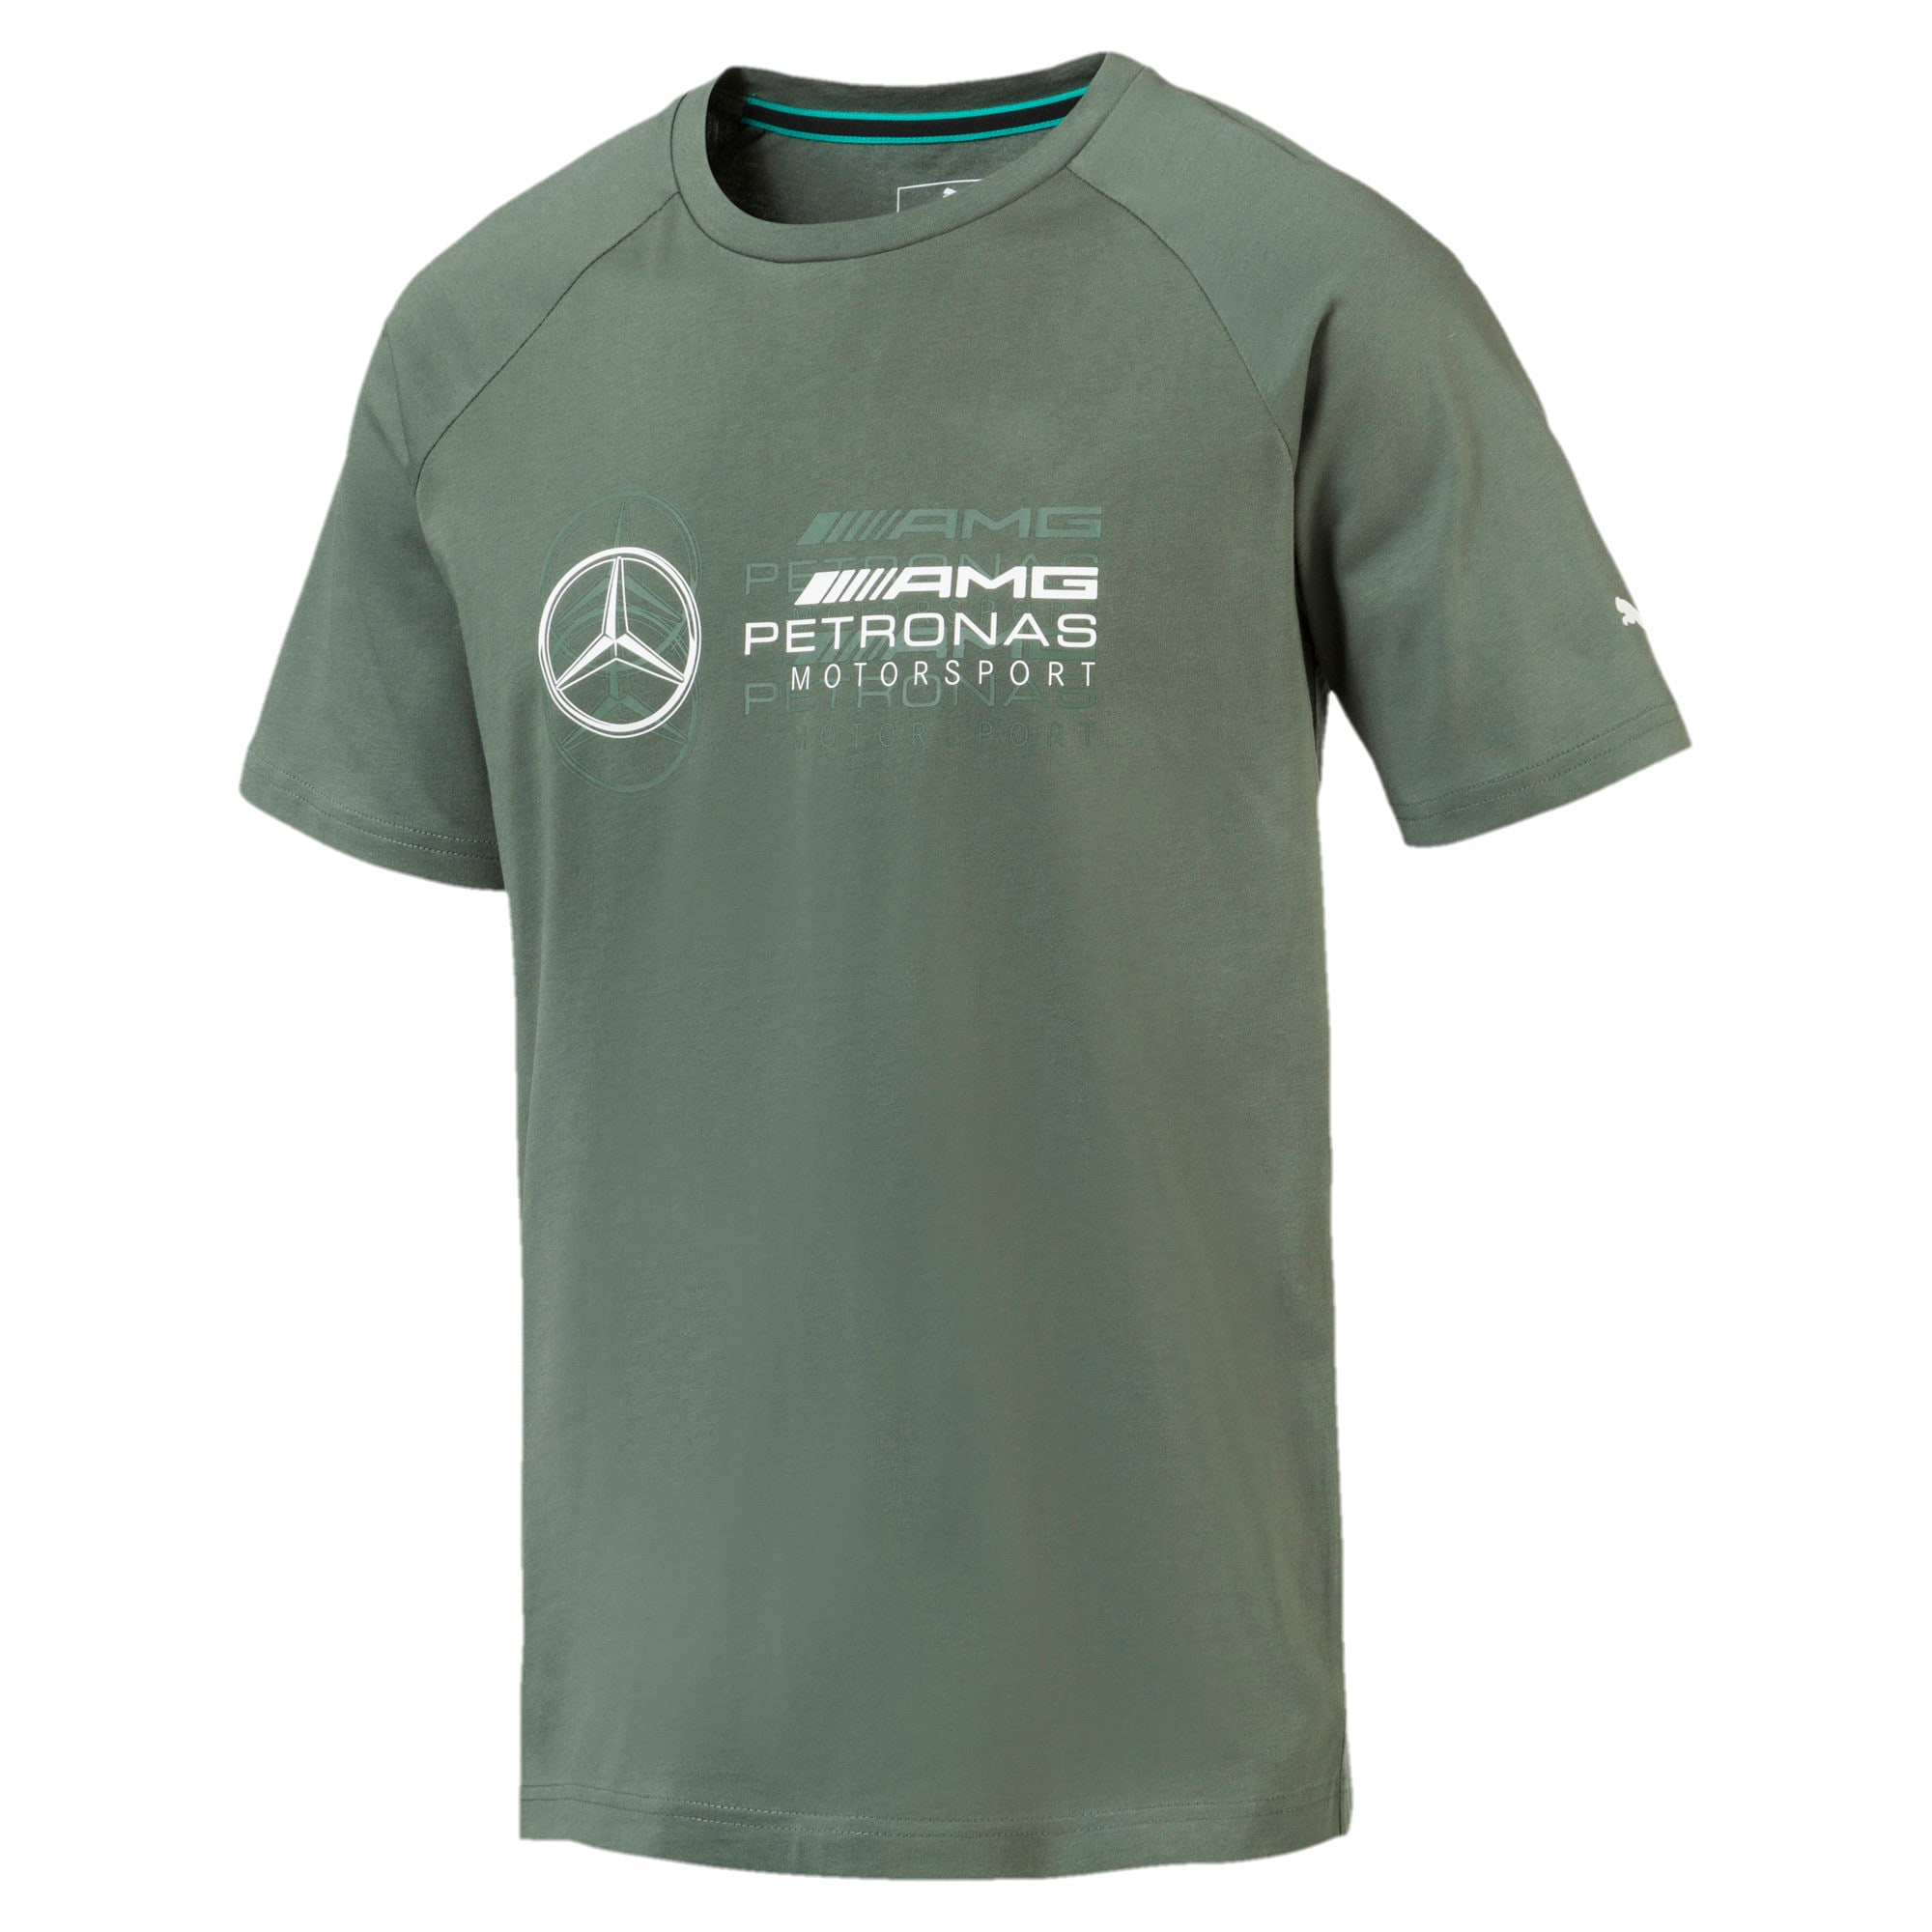 Thumbnail 1 of MERCEDES AMG PETRONAS Men's Logo T-Shirt, Laurel Wreath, medium